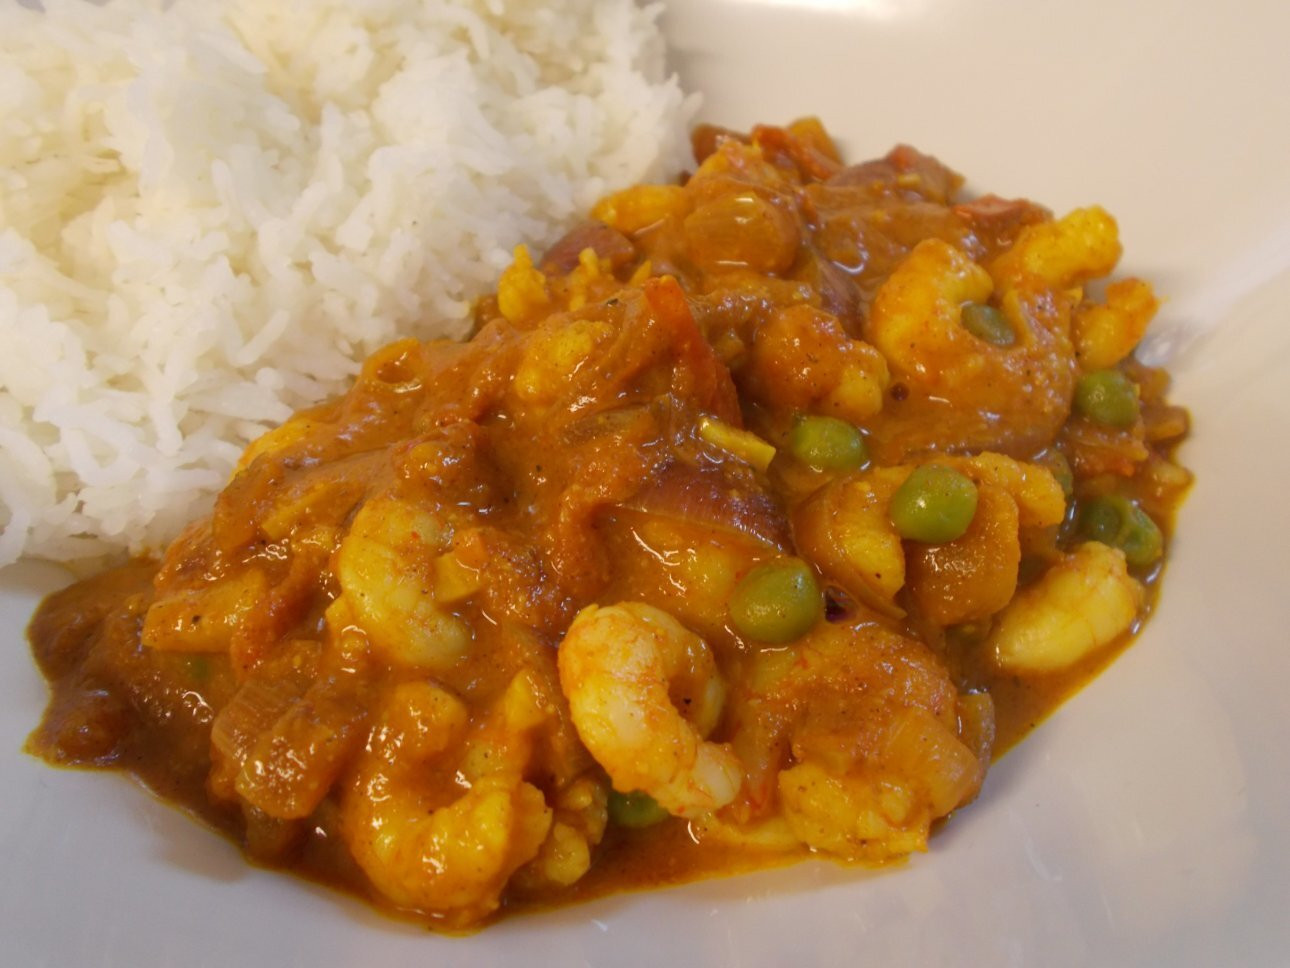 Prawn & Pineapple curry - mmmnn, fruity!